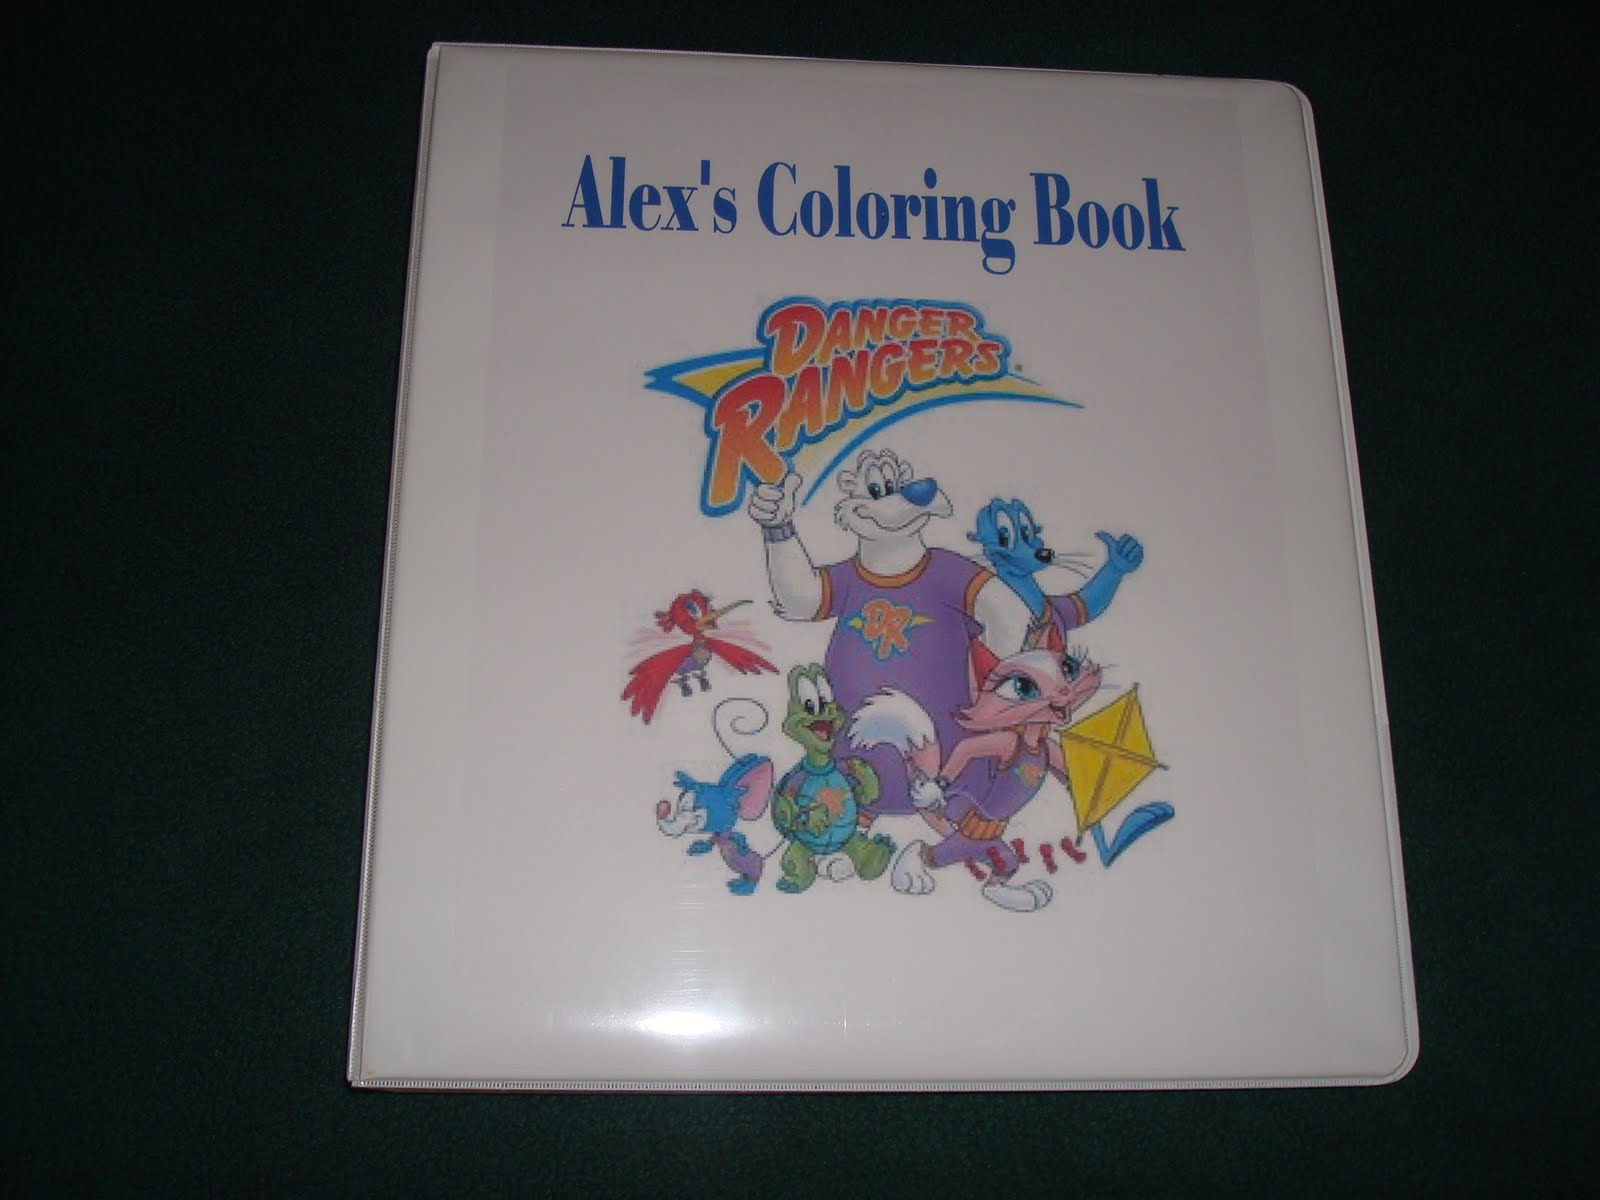 They Ask Me For All Different Characters And Especially That Are Too Hard To Find Coloring Books Old